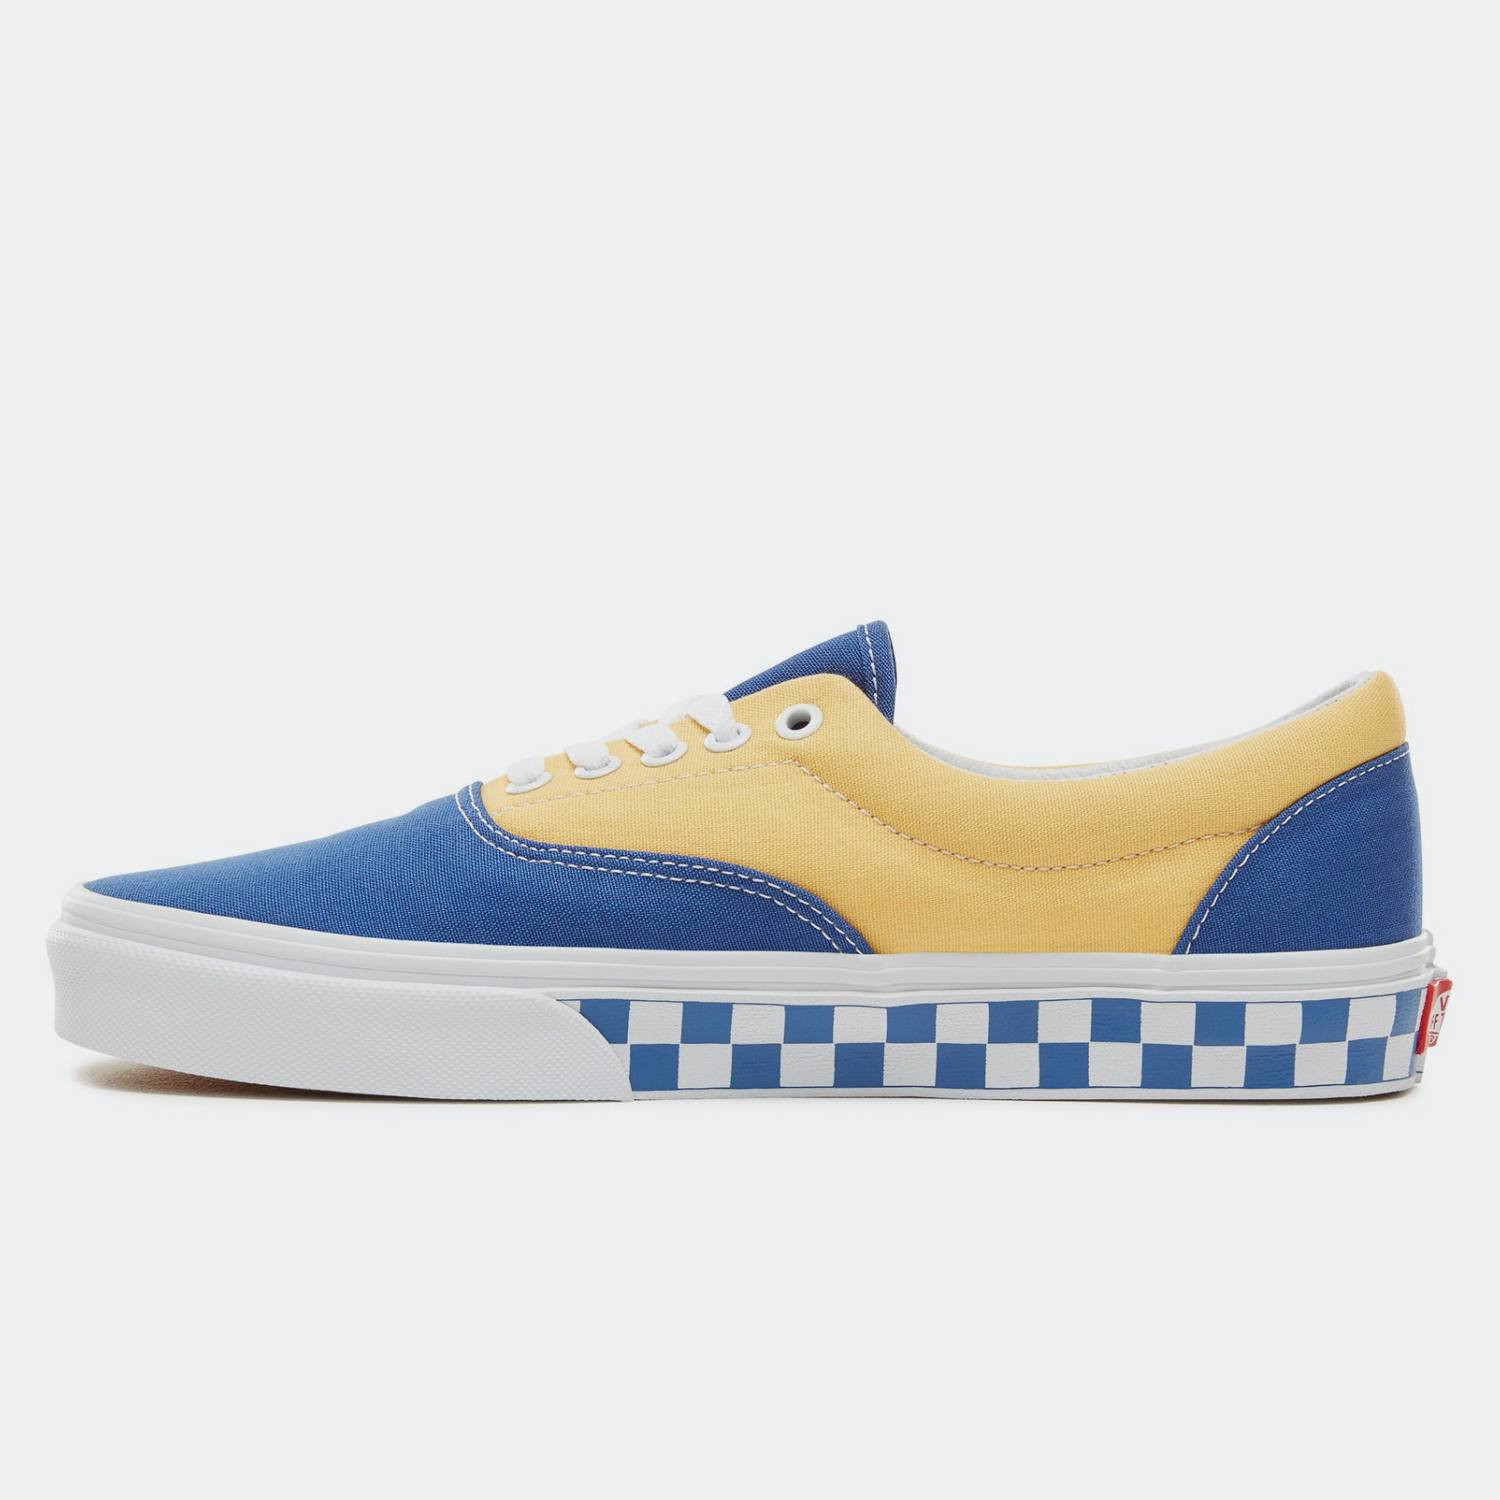 Vans BMX Checkerboard Era Shoes